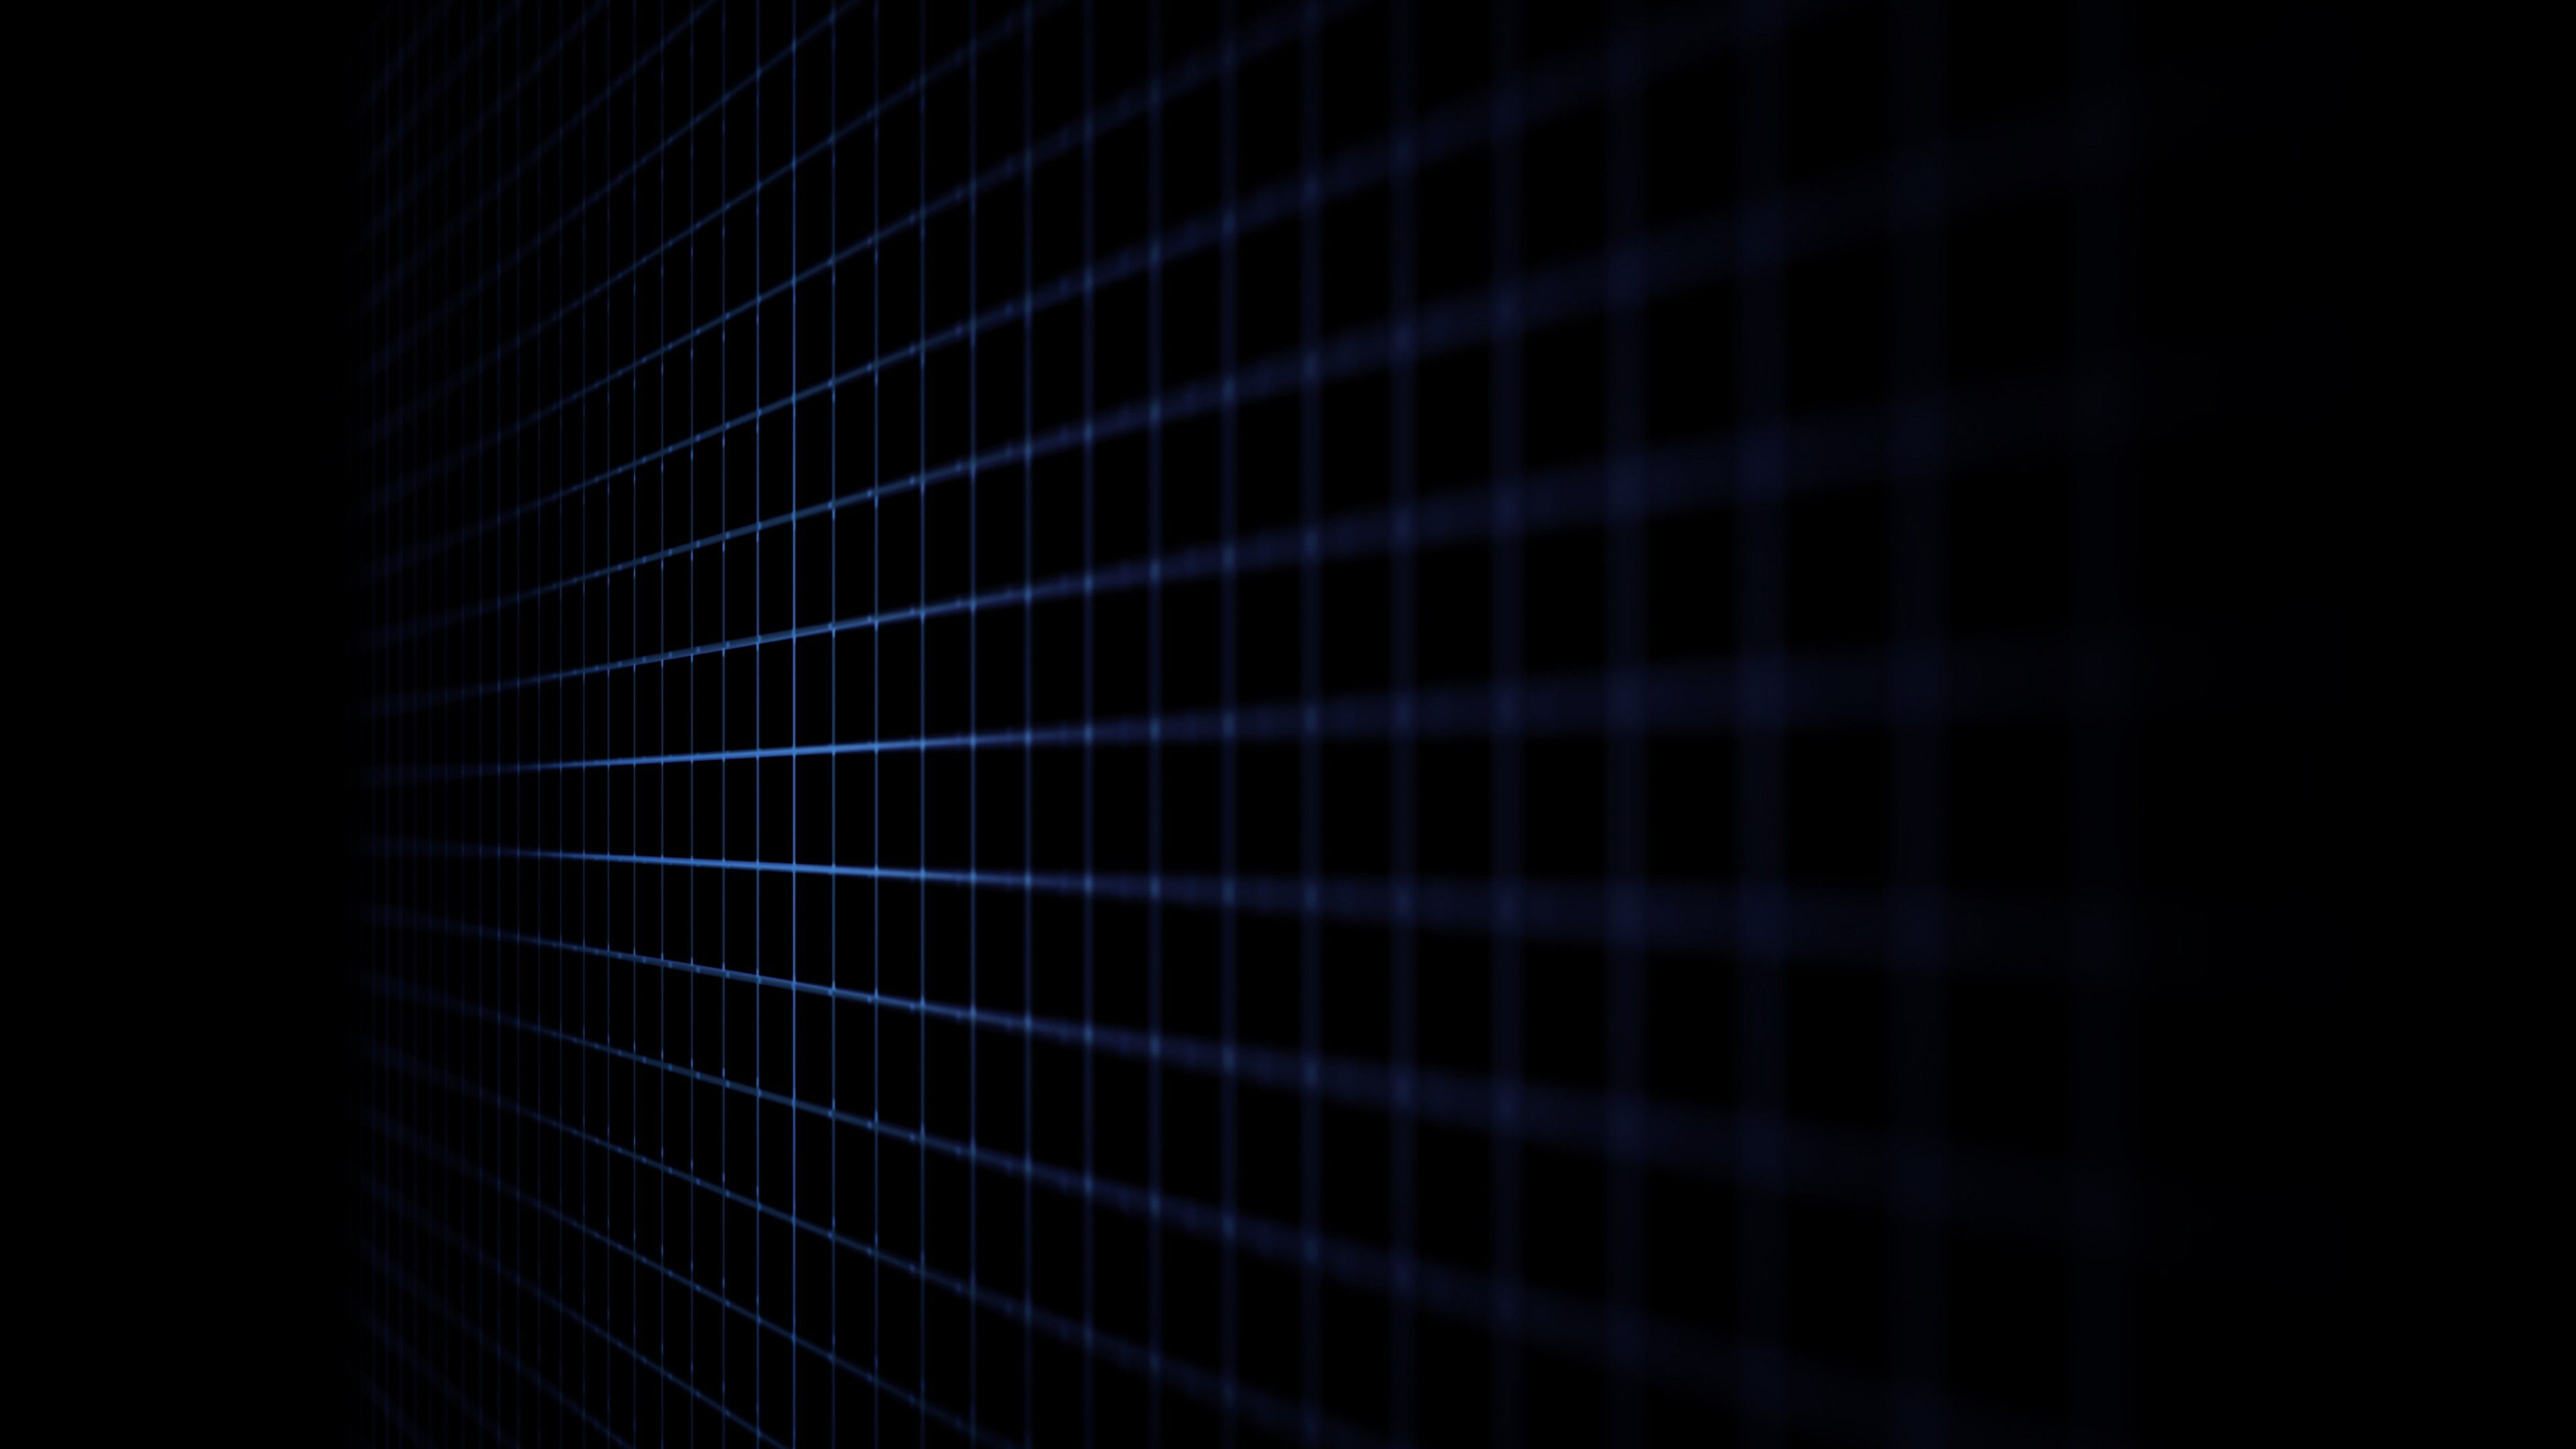 Pin On Awesome Abstract 4k Wallpapers Black Wallpaper Dark Wallpaper Cool Black Wallpaper